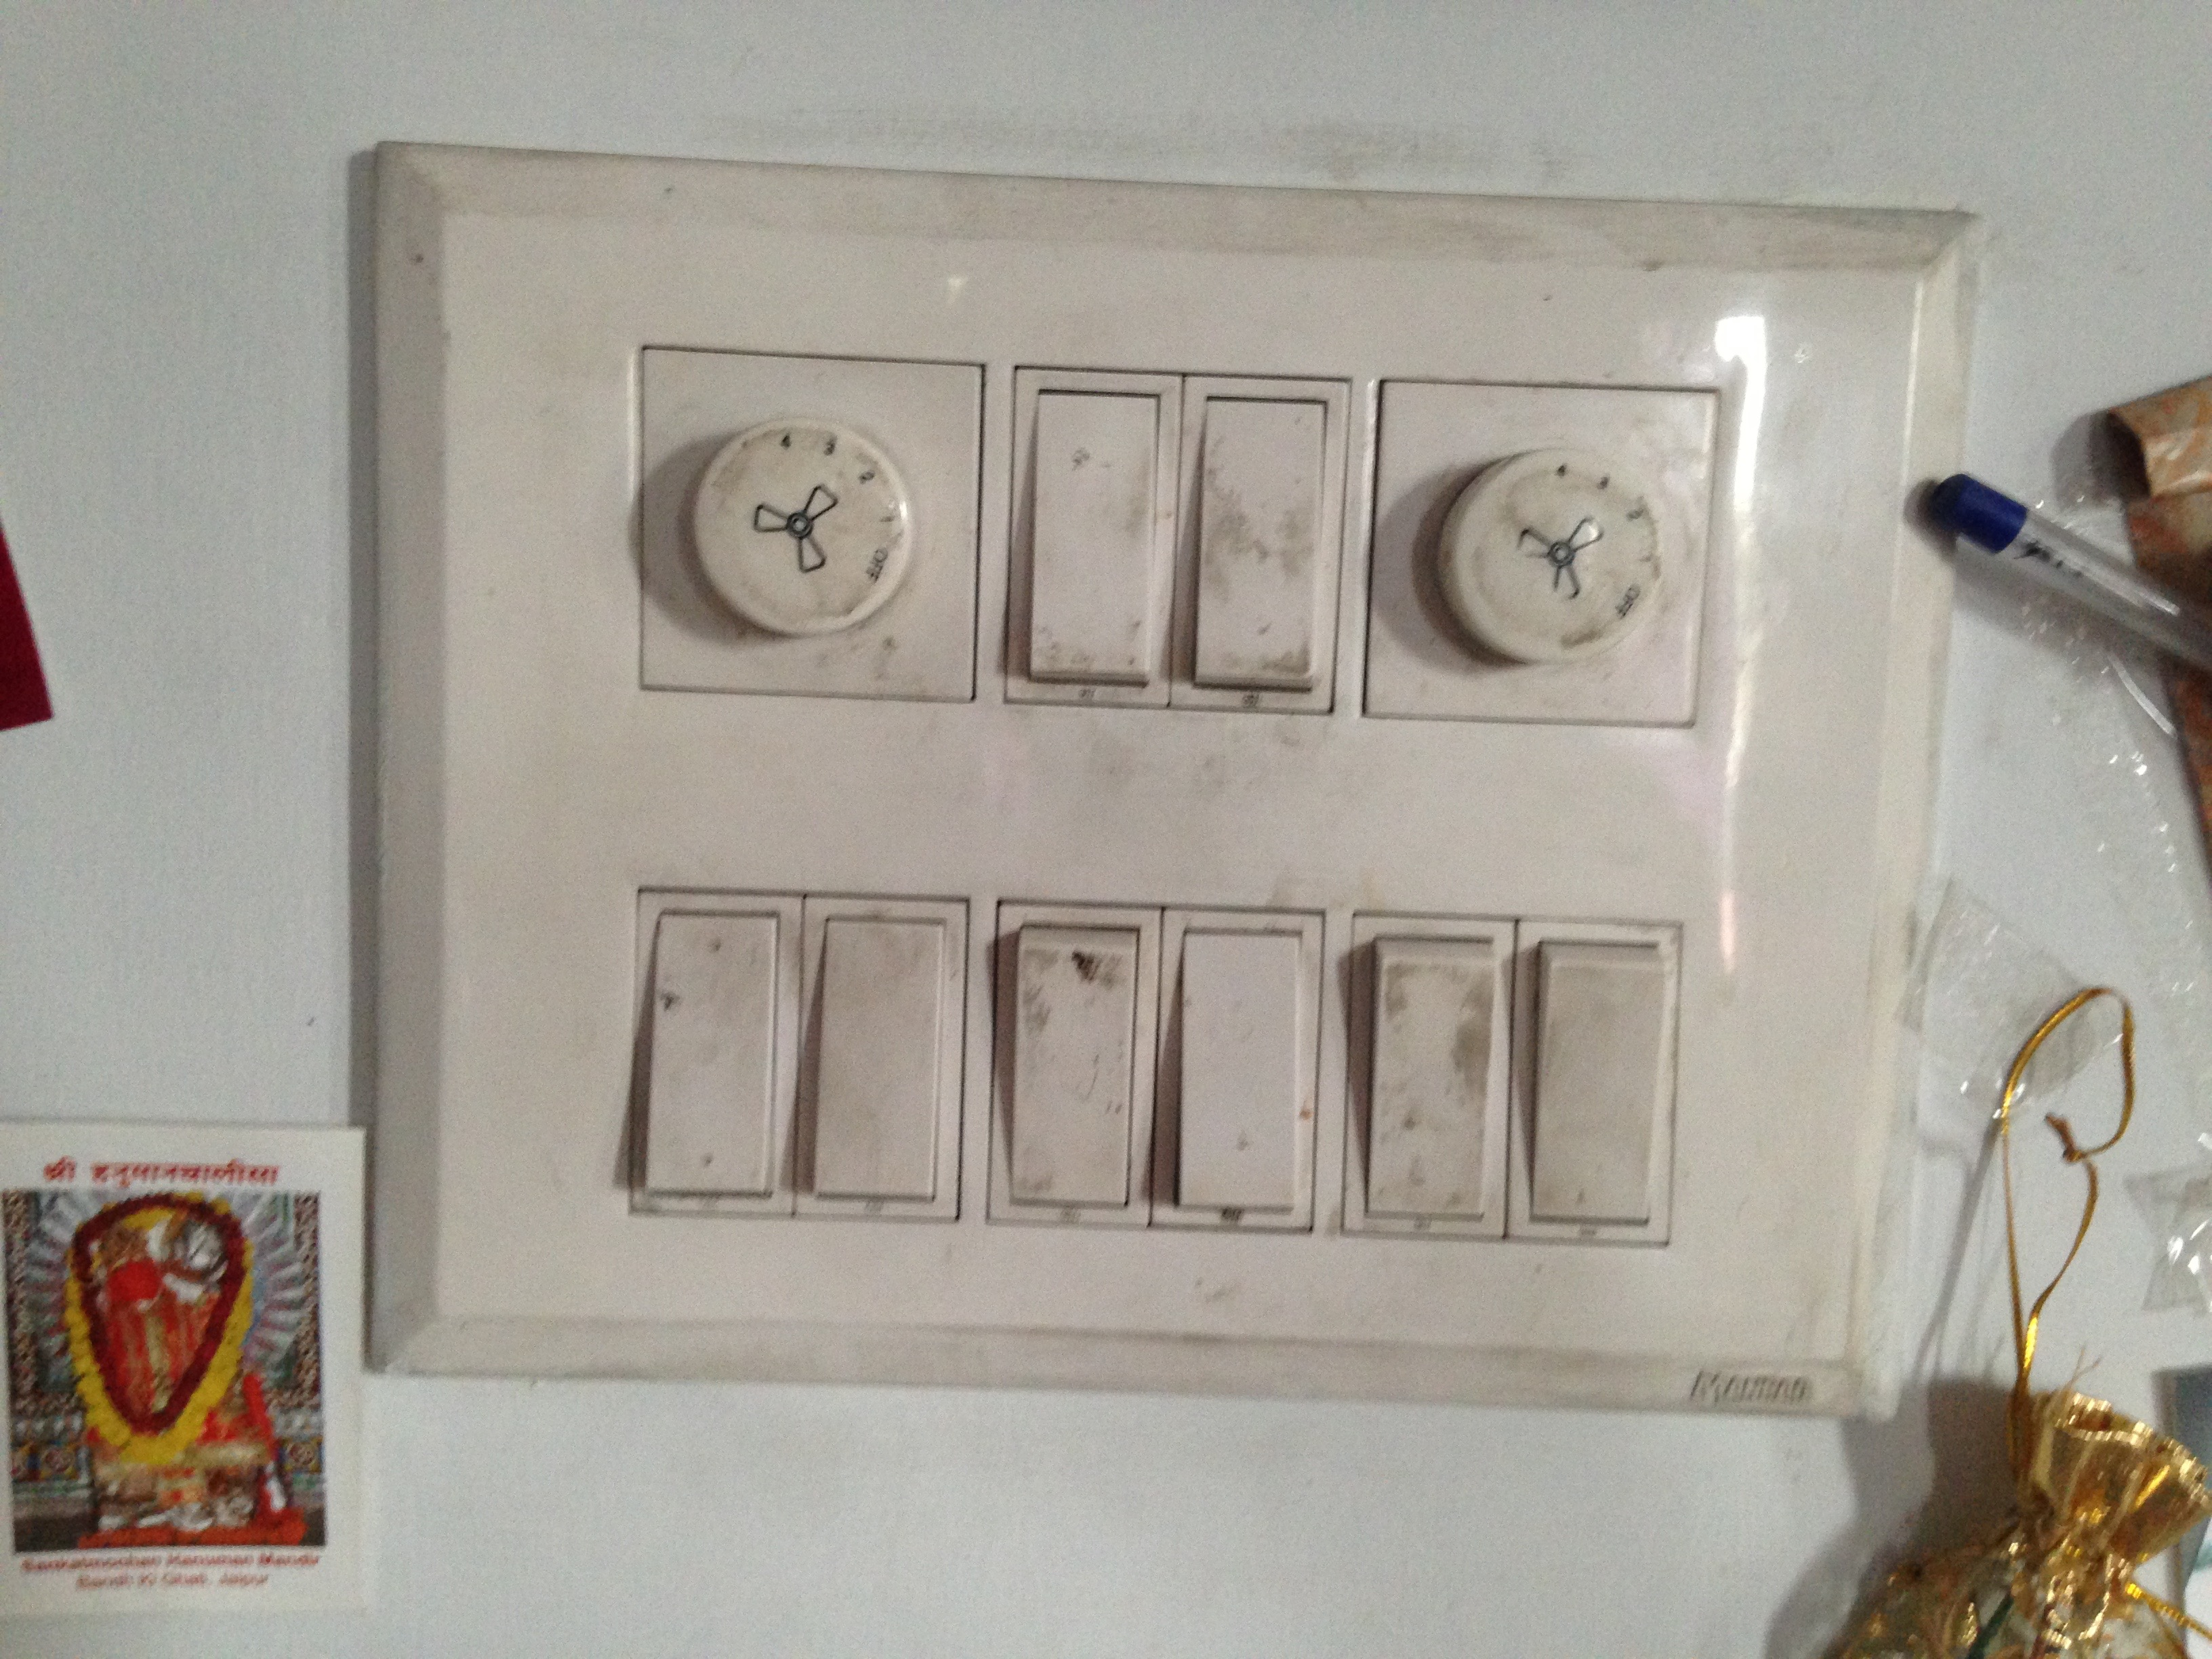 Indian buildings always have way more switches than appliances/lights associated with them